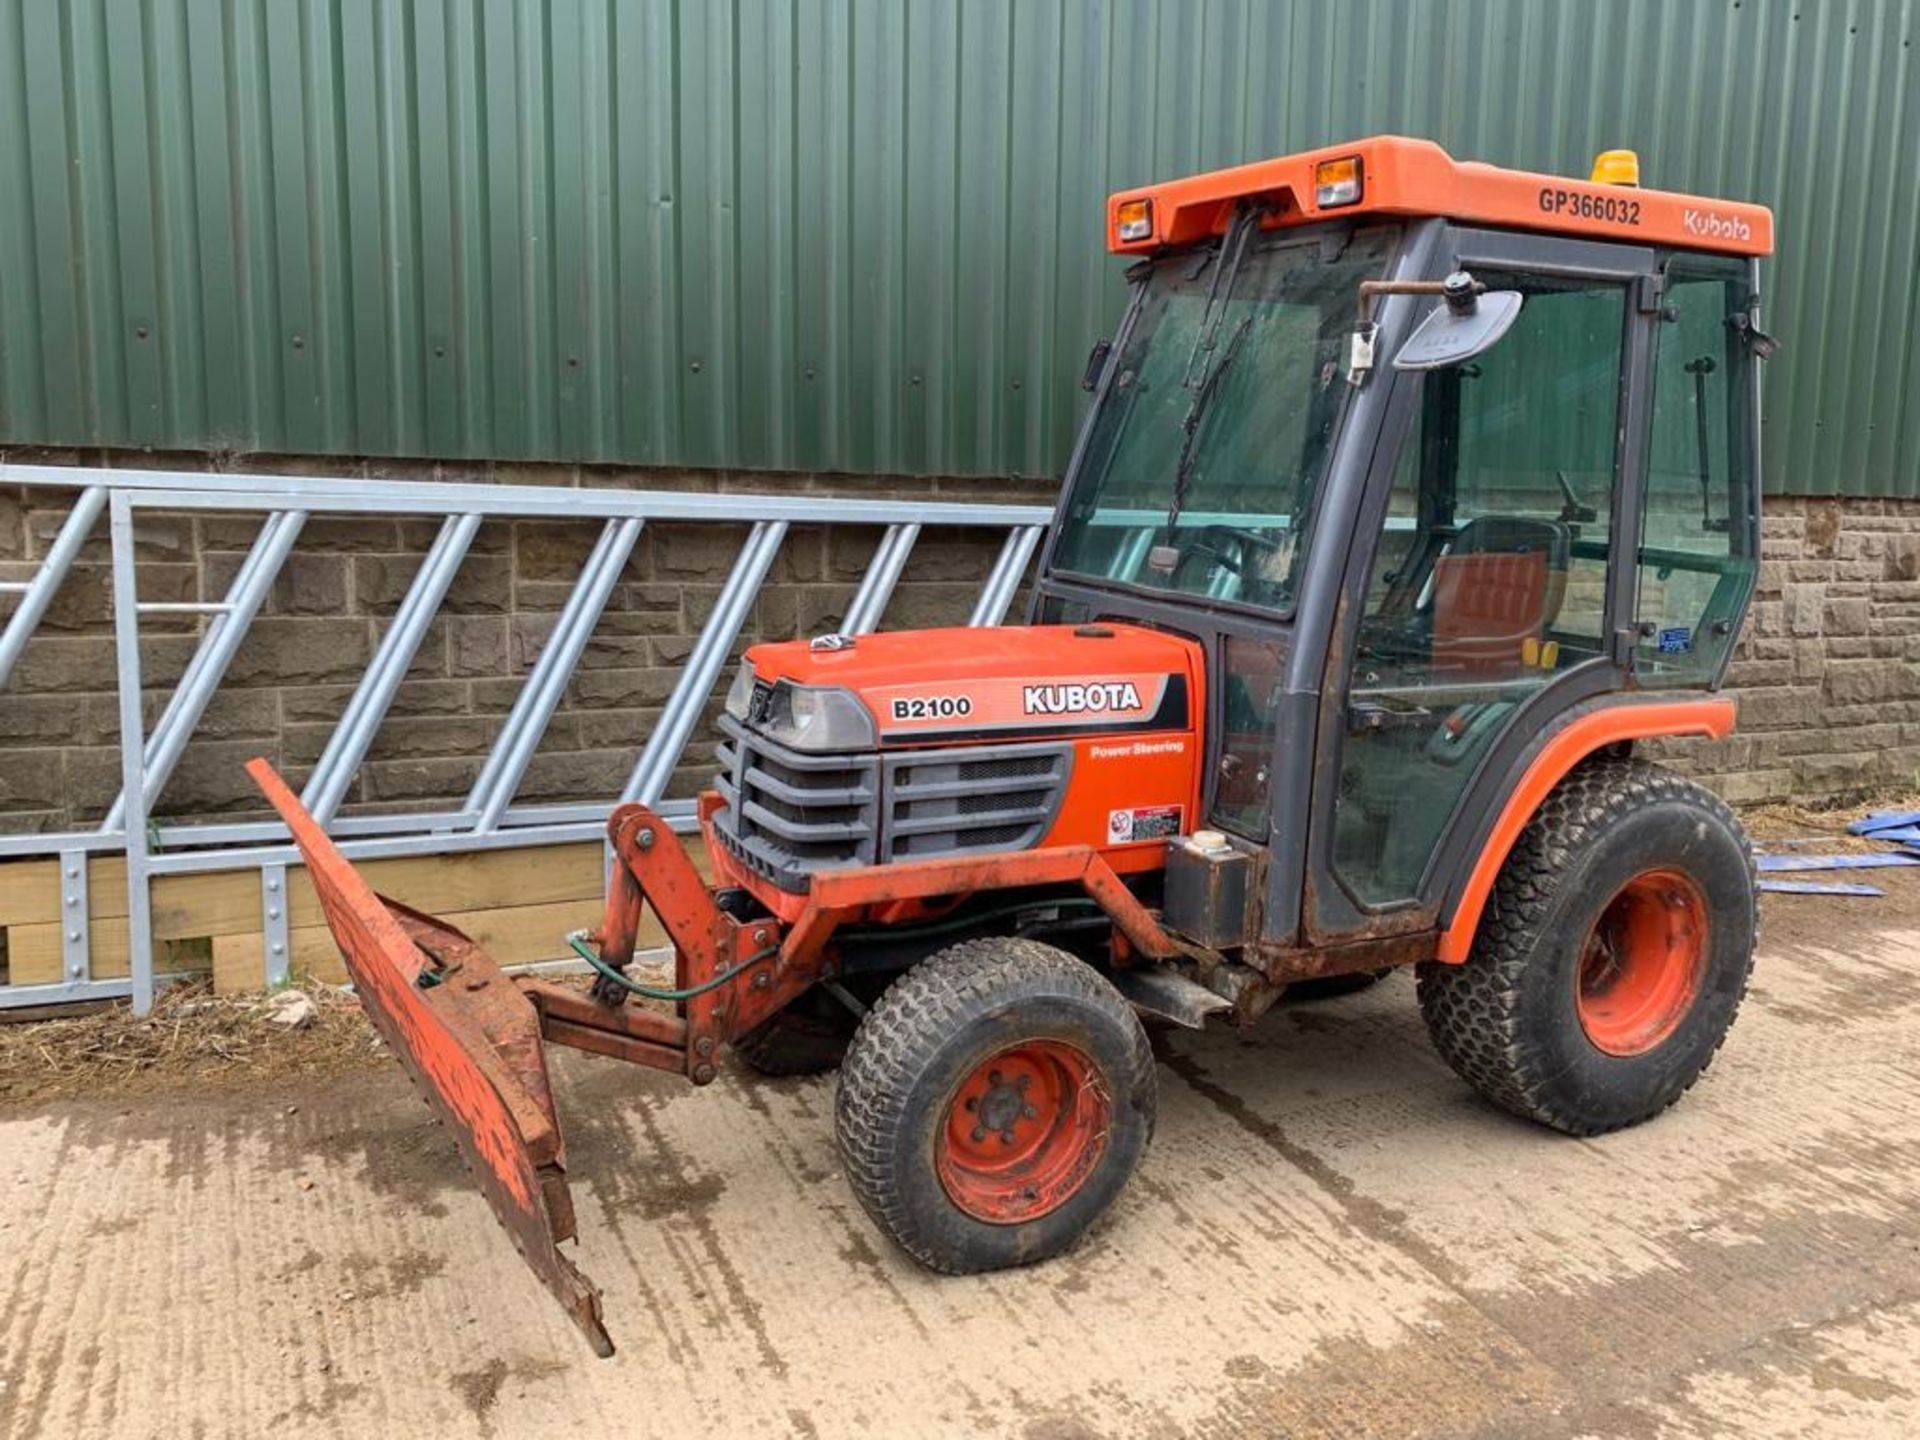 Lot 121 - 2000/X REG KUBOTA B2100 COMPACT TRACTOR WITH FULL GLASS CAB C/W PLOUGH ATTACHMENT *PLUS VAT*